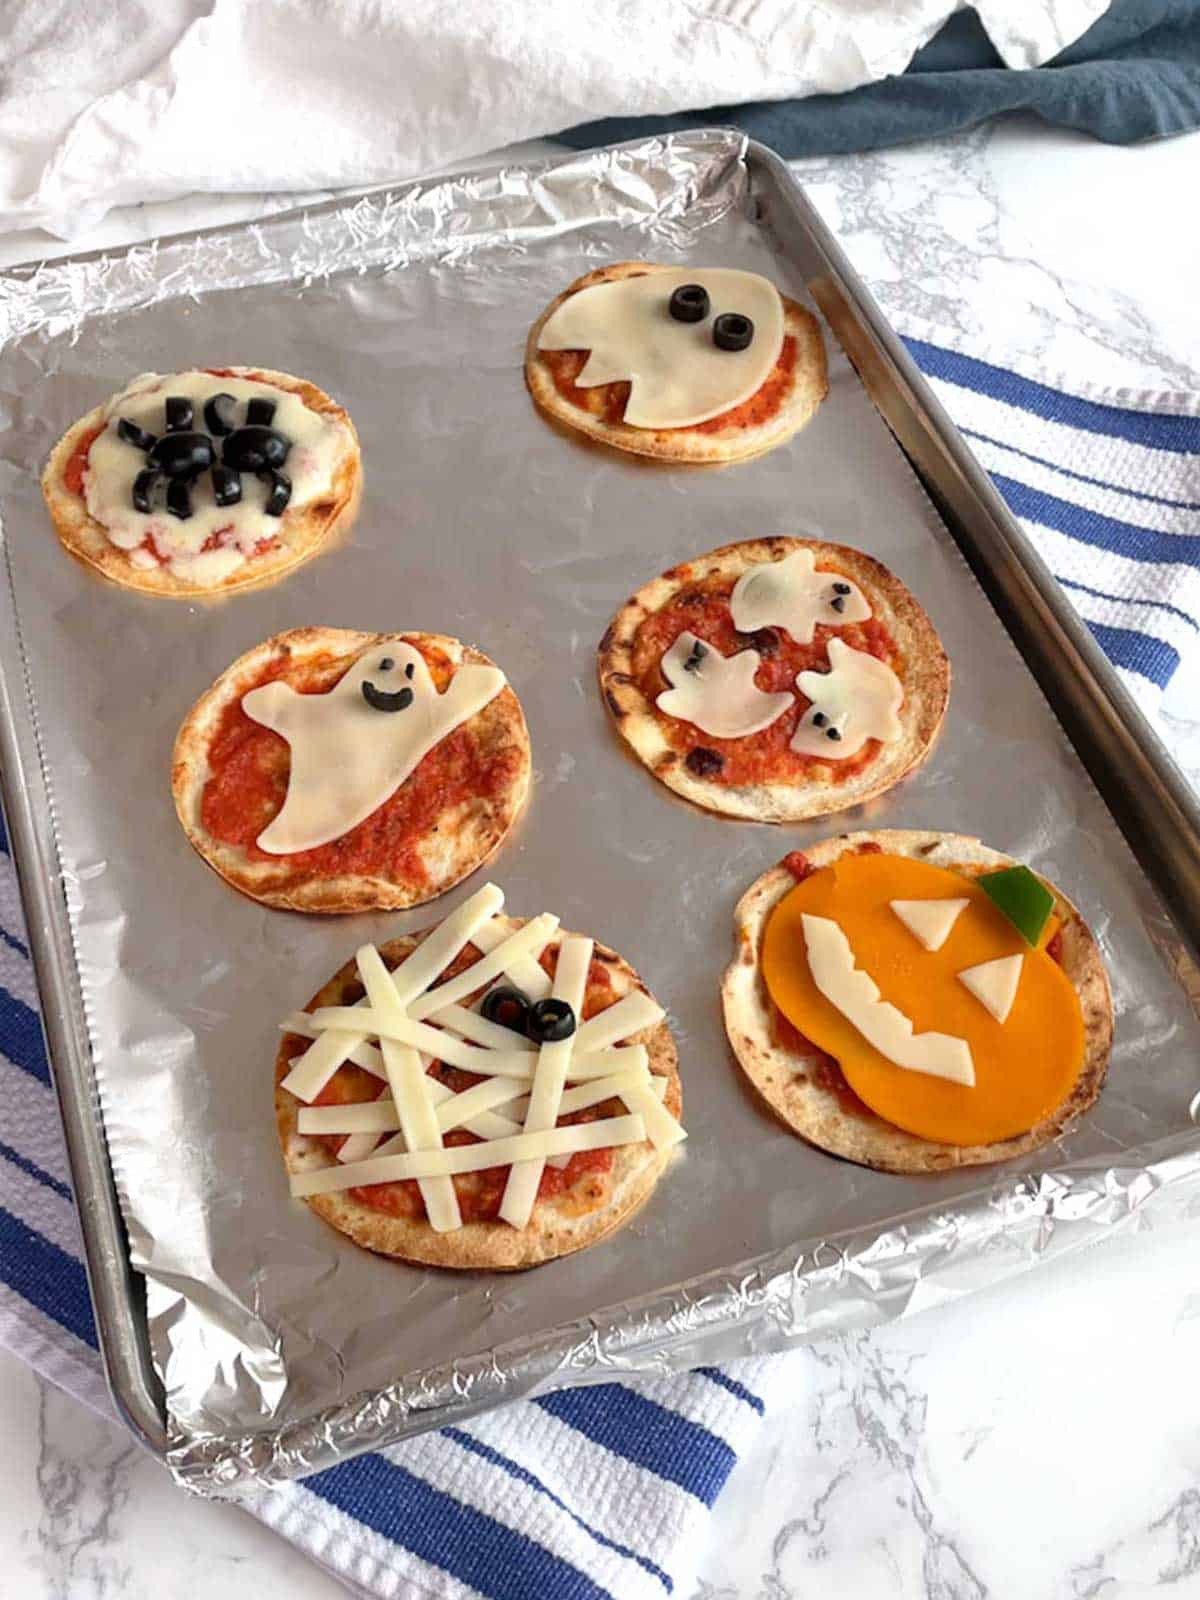 Pizza Toppings Added